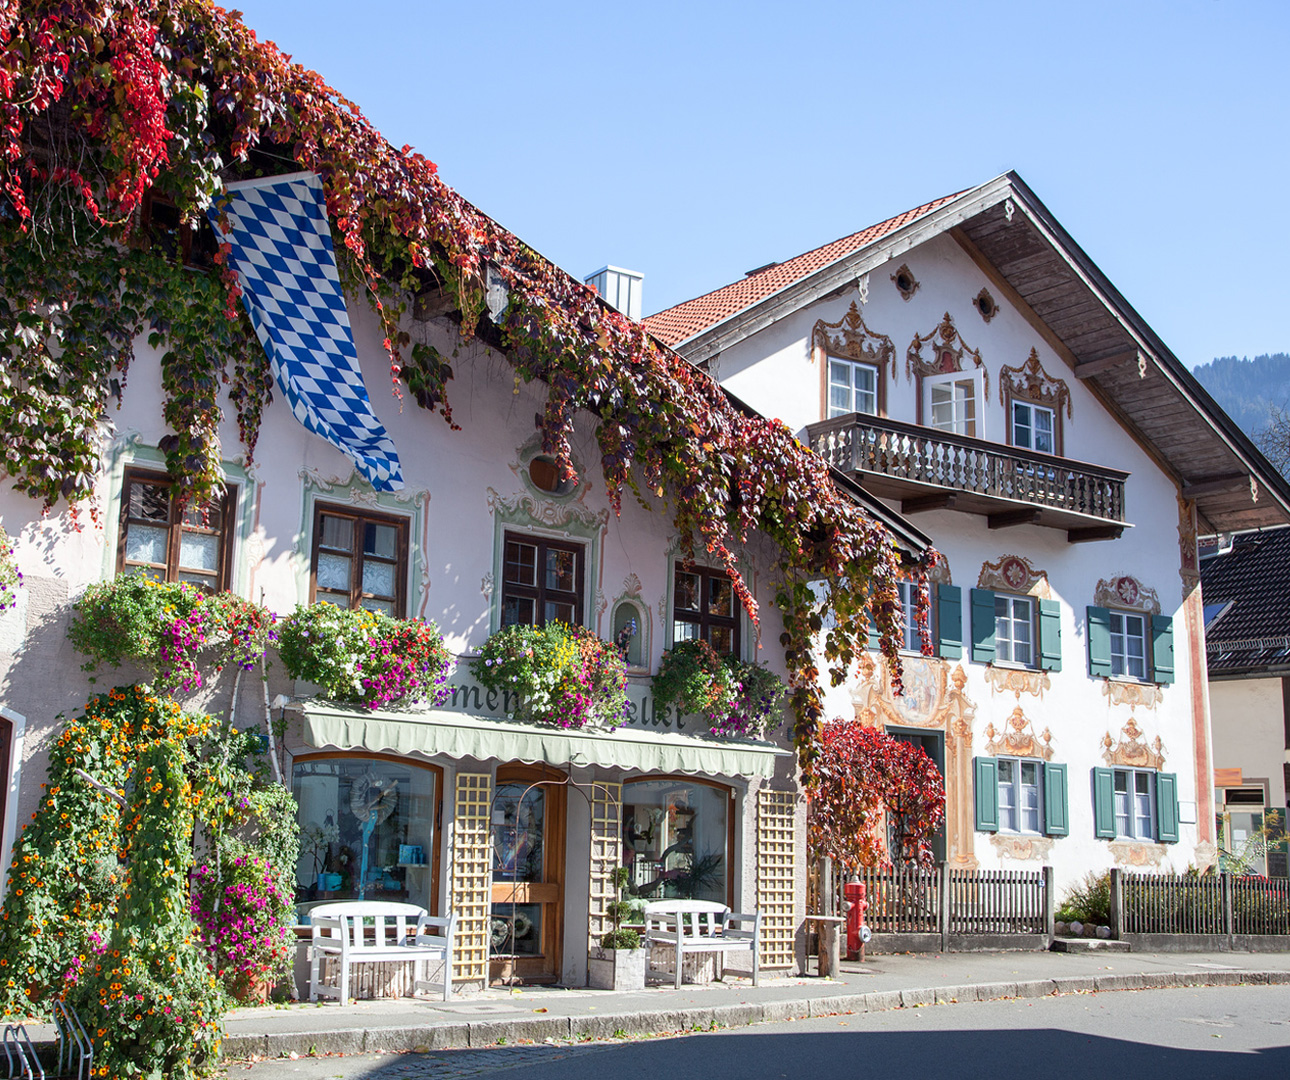 Explore Oberammergau hand-painted frescoes displayed on many homes and buildings around town